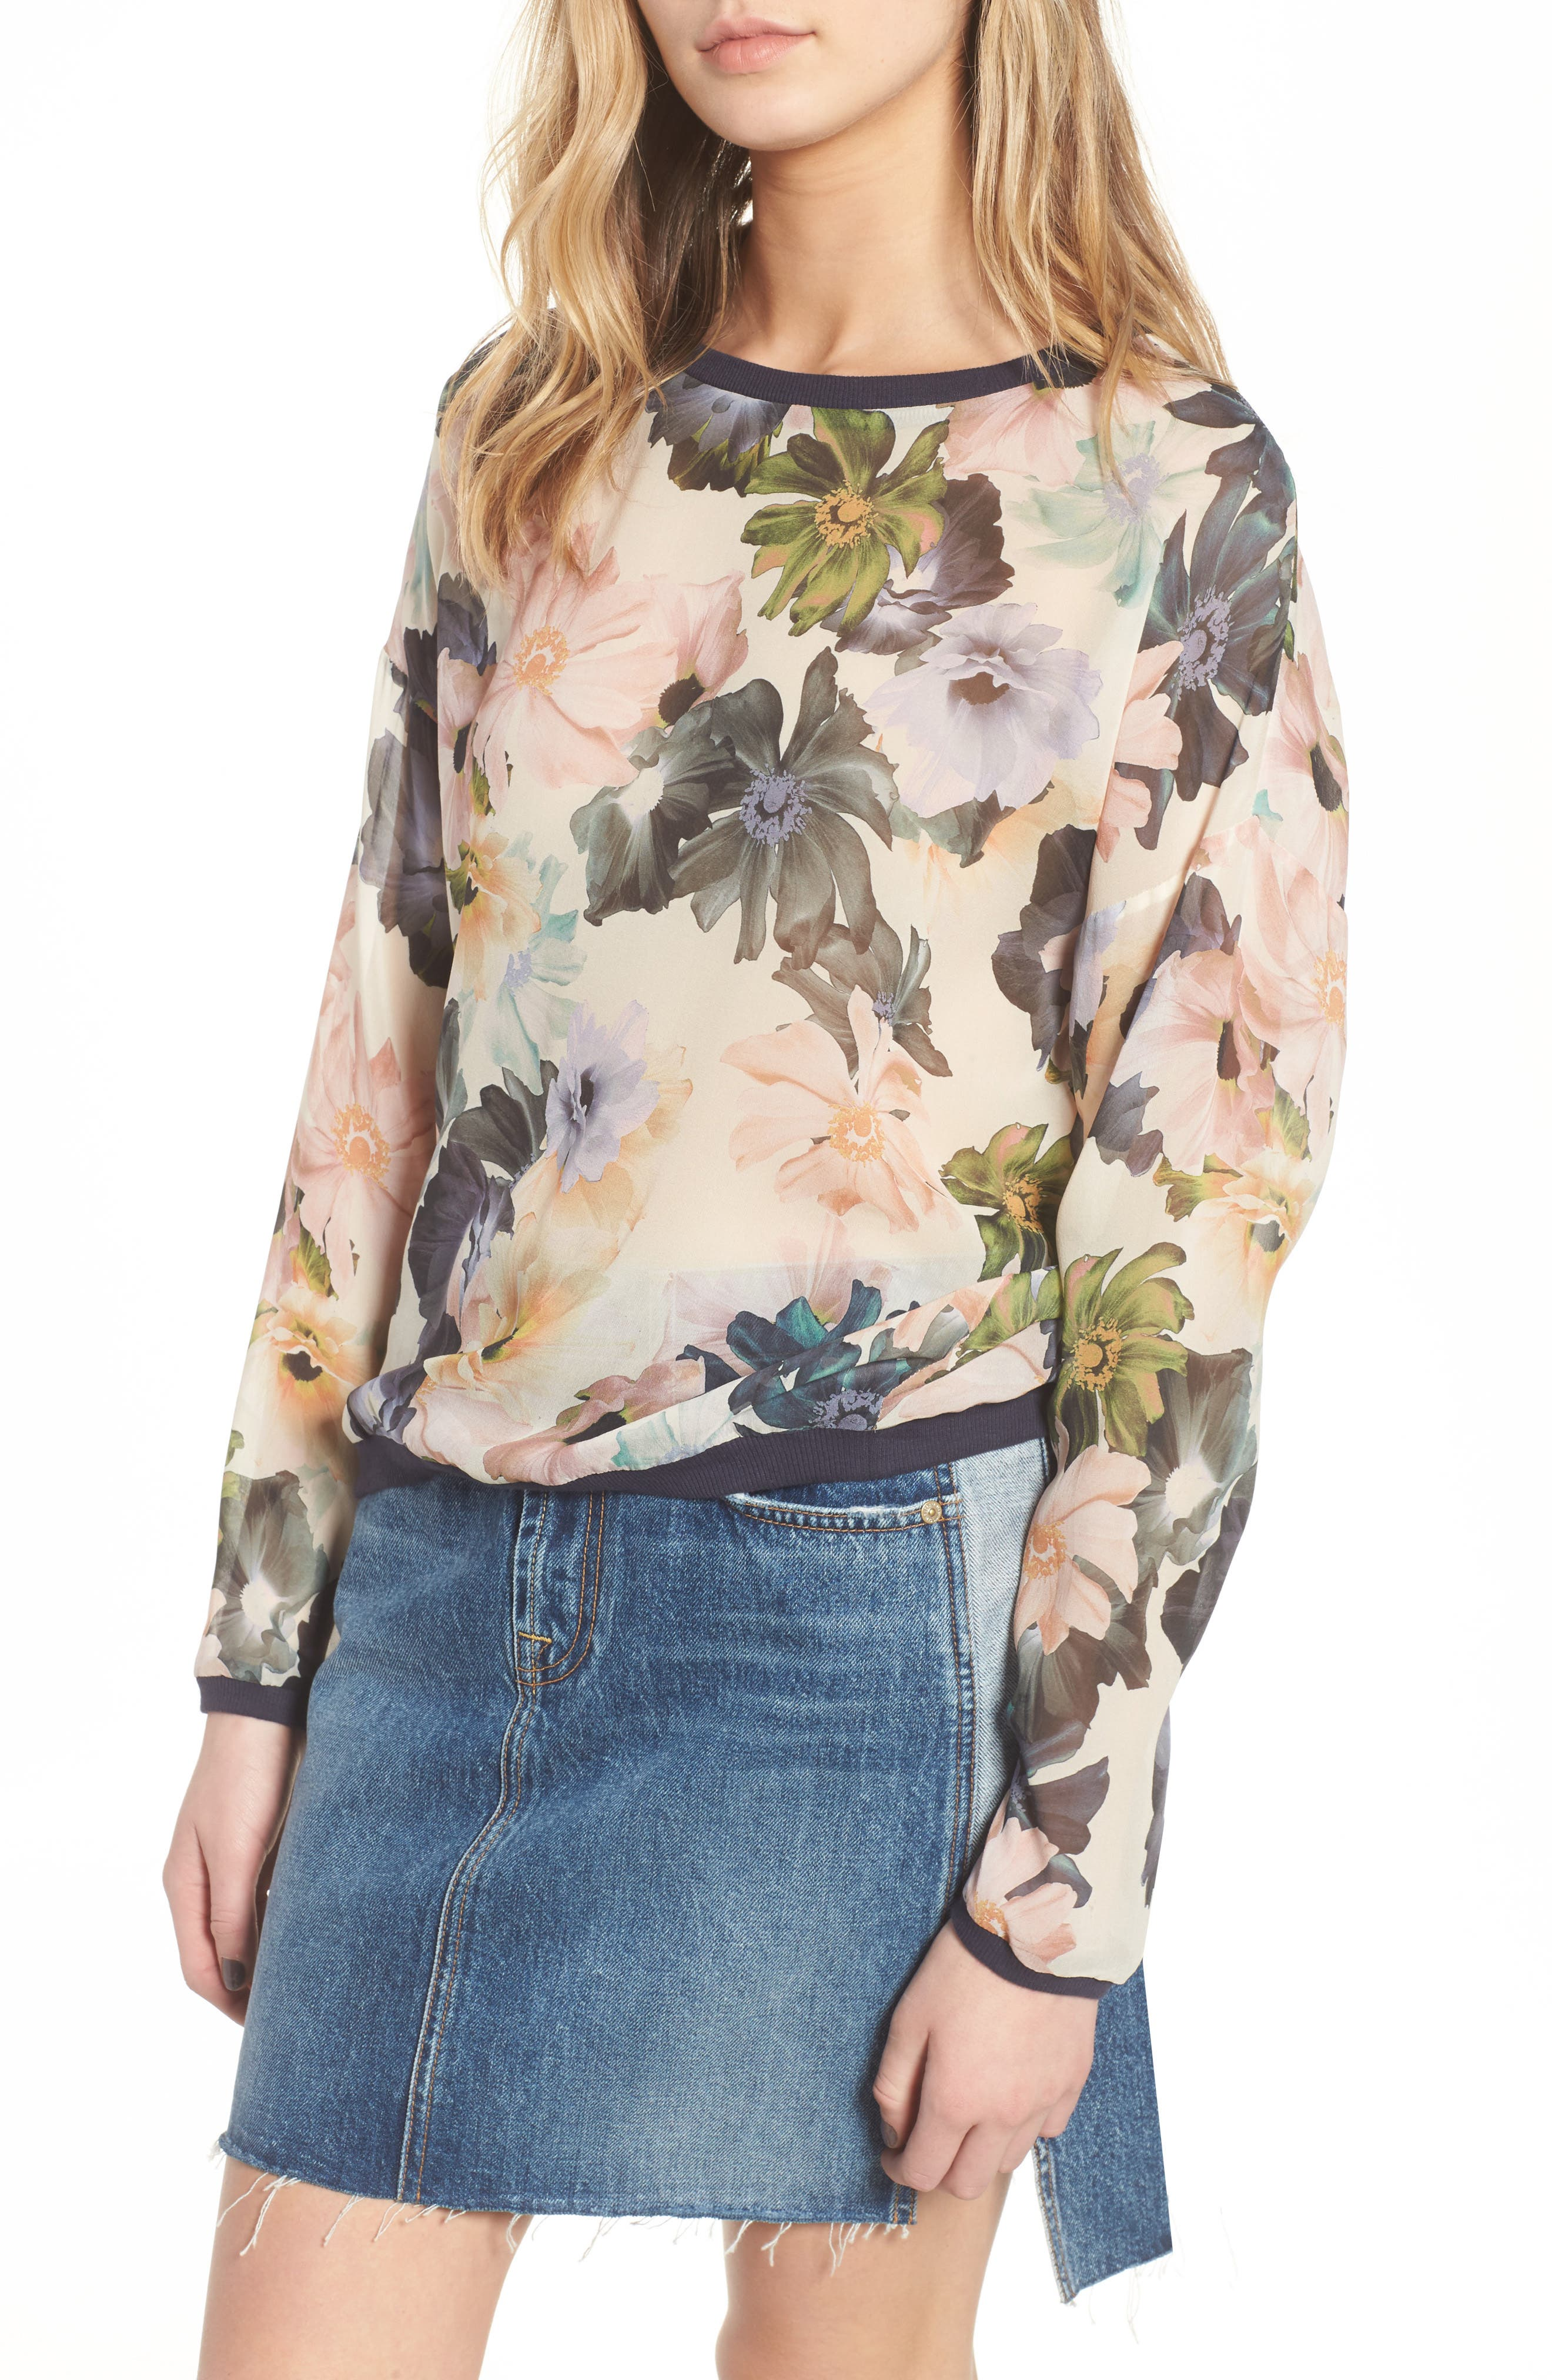 Georgette Sweatshirt,                         Main,                         color, Desert Garden Print